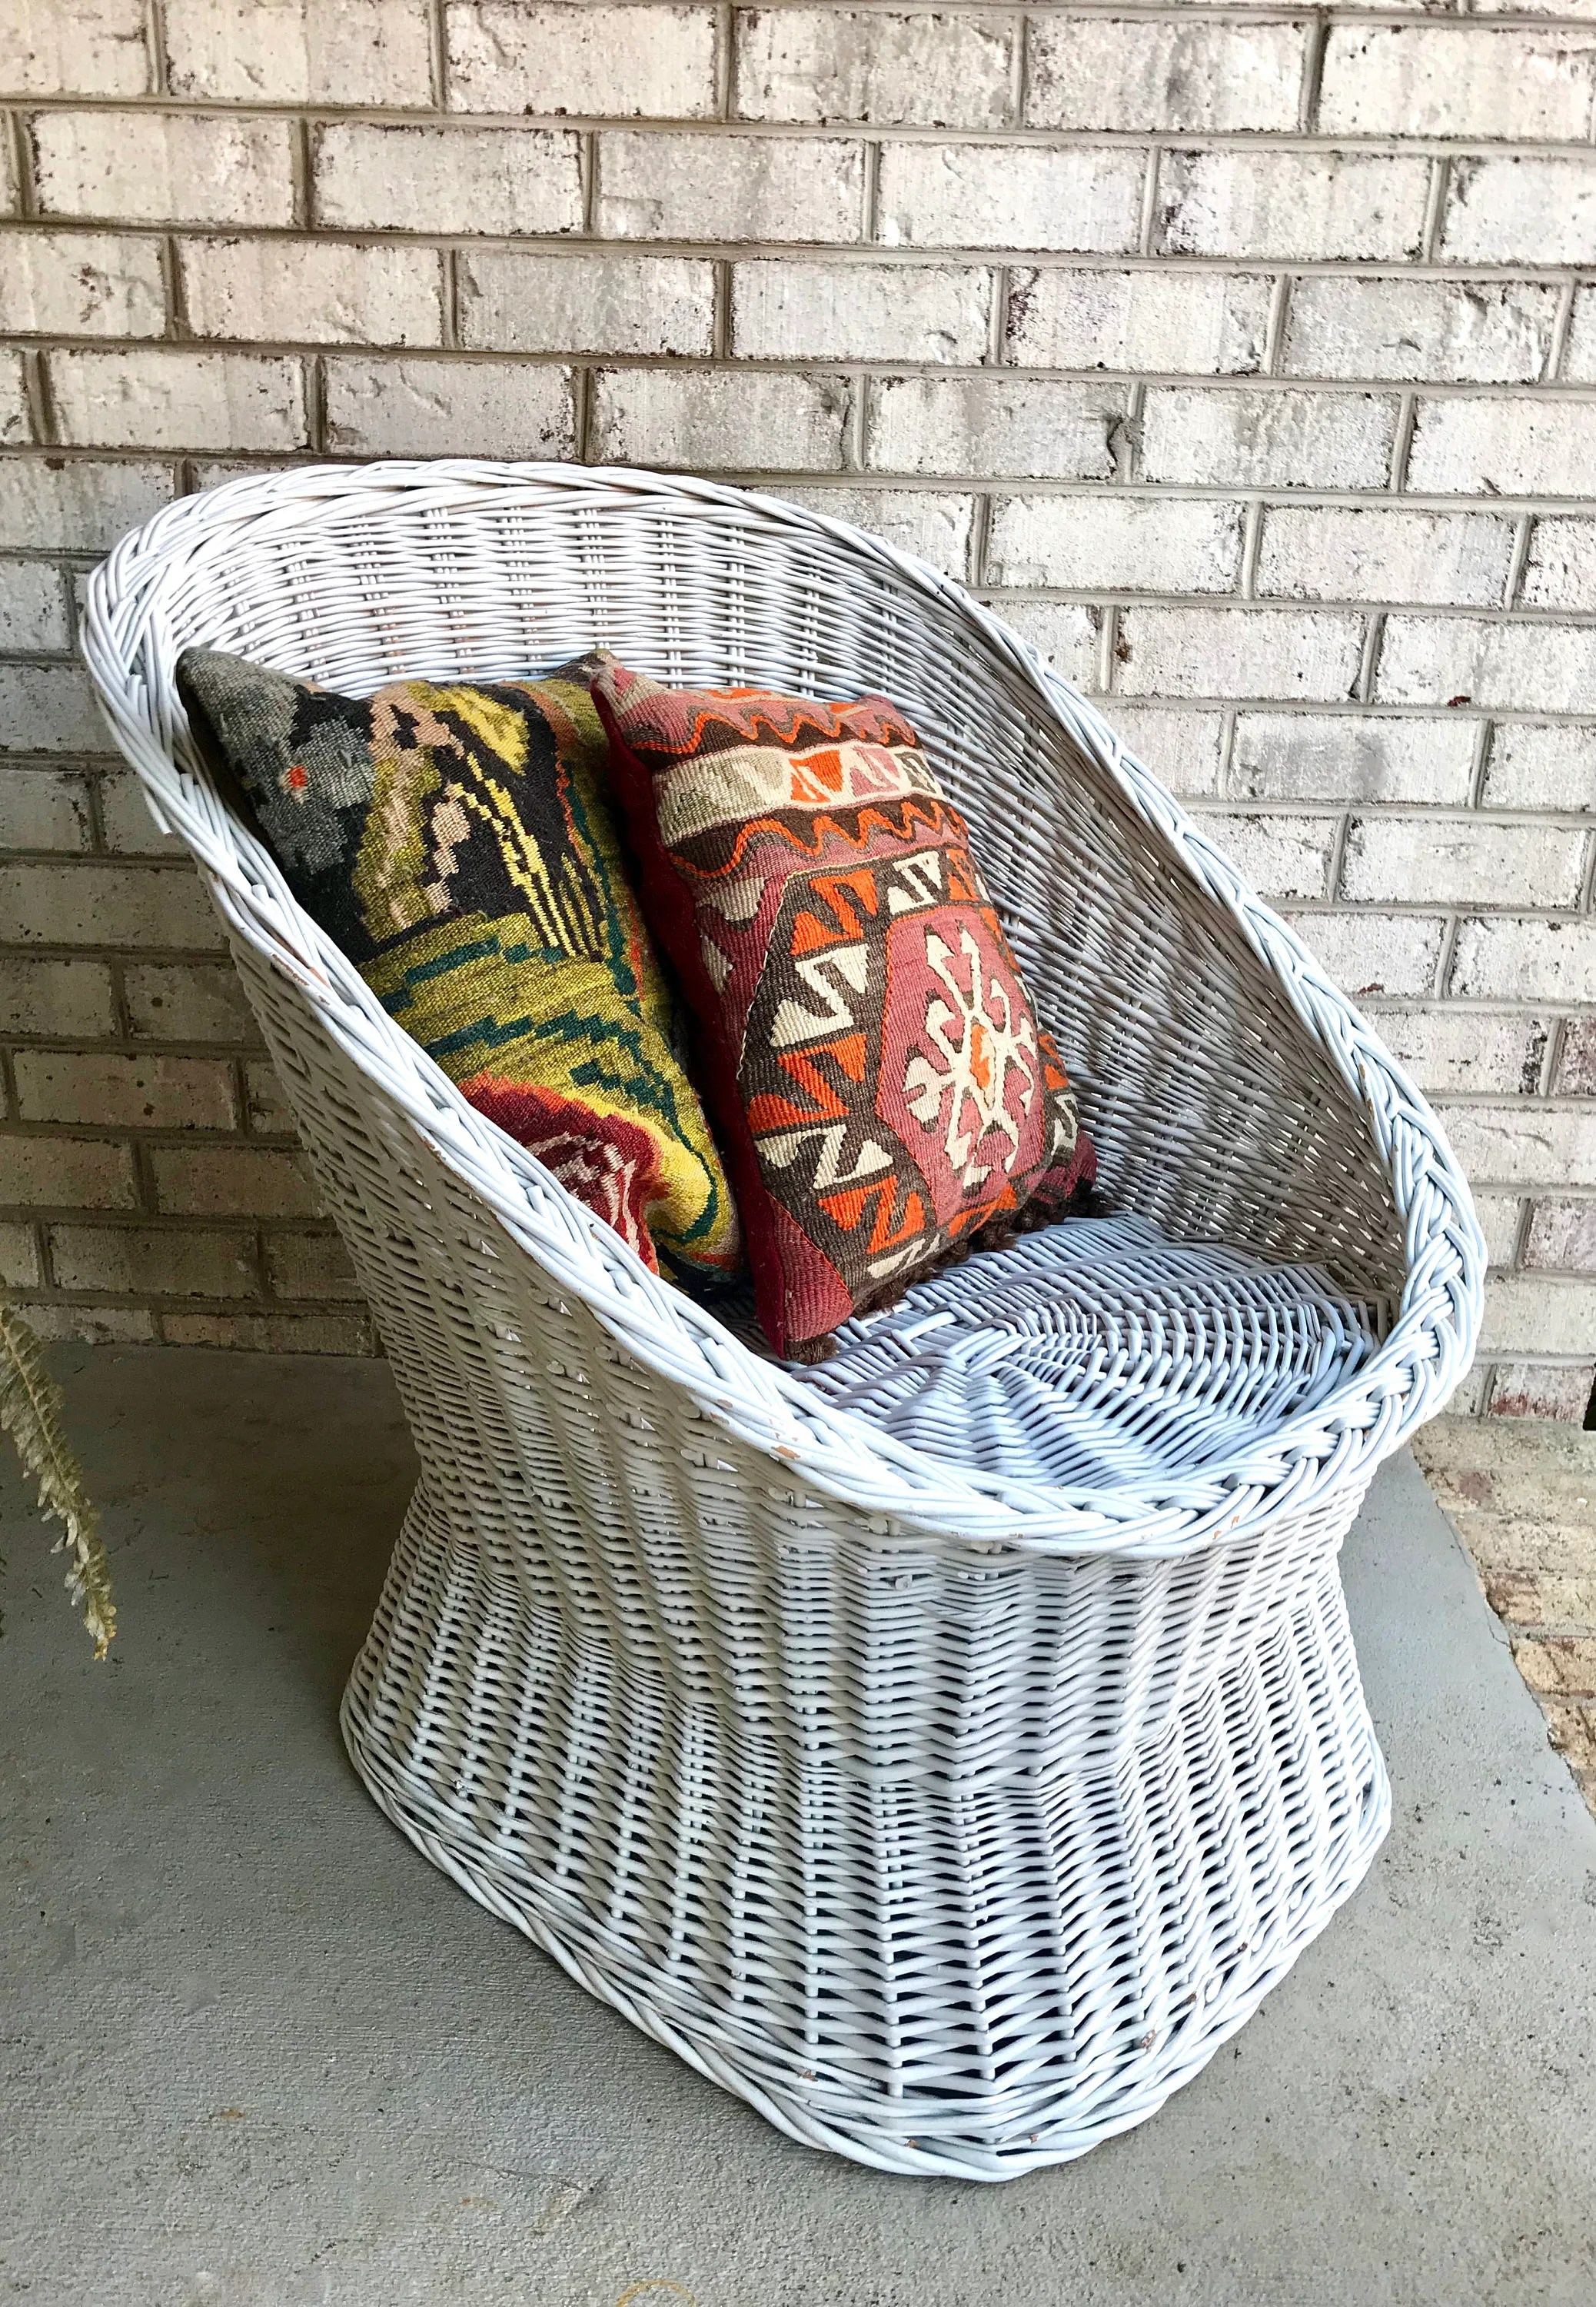 Painted Rattan Furniture Vintage White Rattan Egg Cup Chair Wicker Pod Chair Bohemian Basket Chair Mid Century Wicker Chair White Rattan Chair Patio Chair